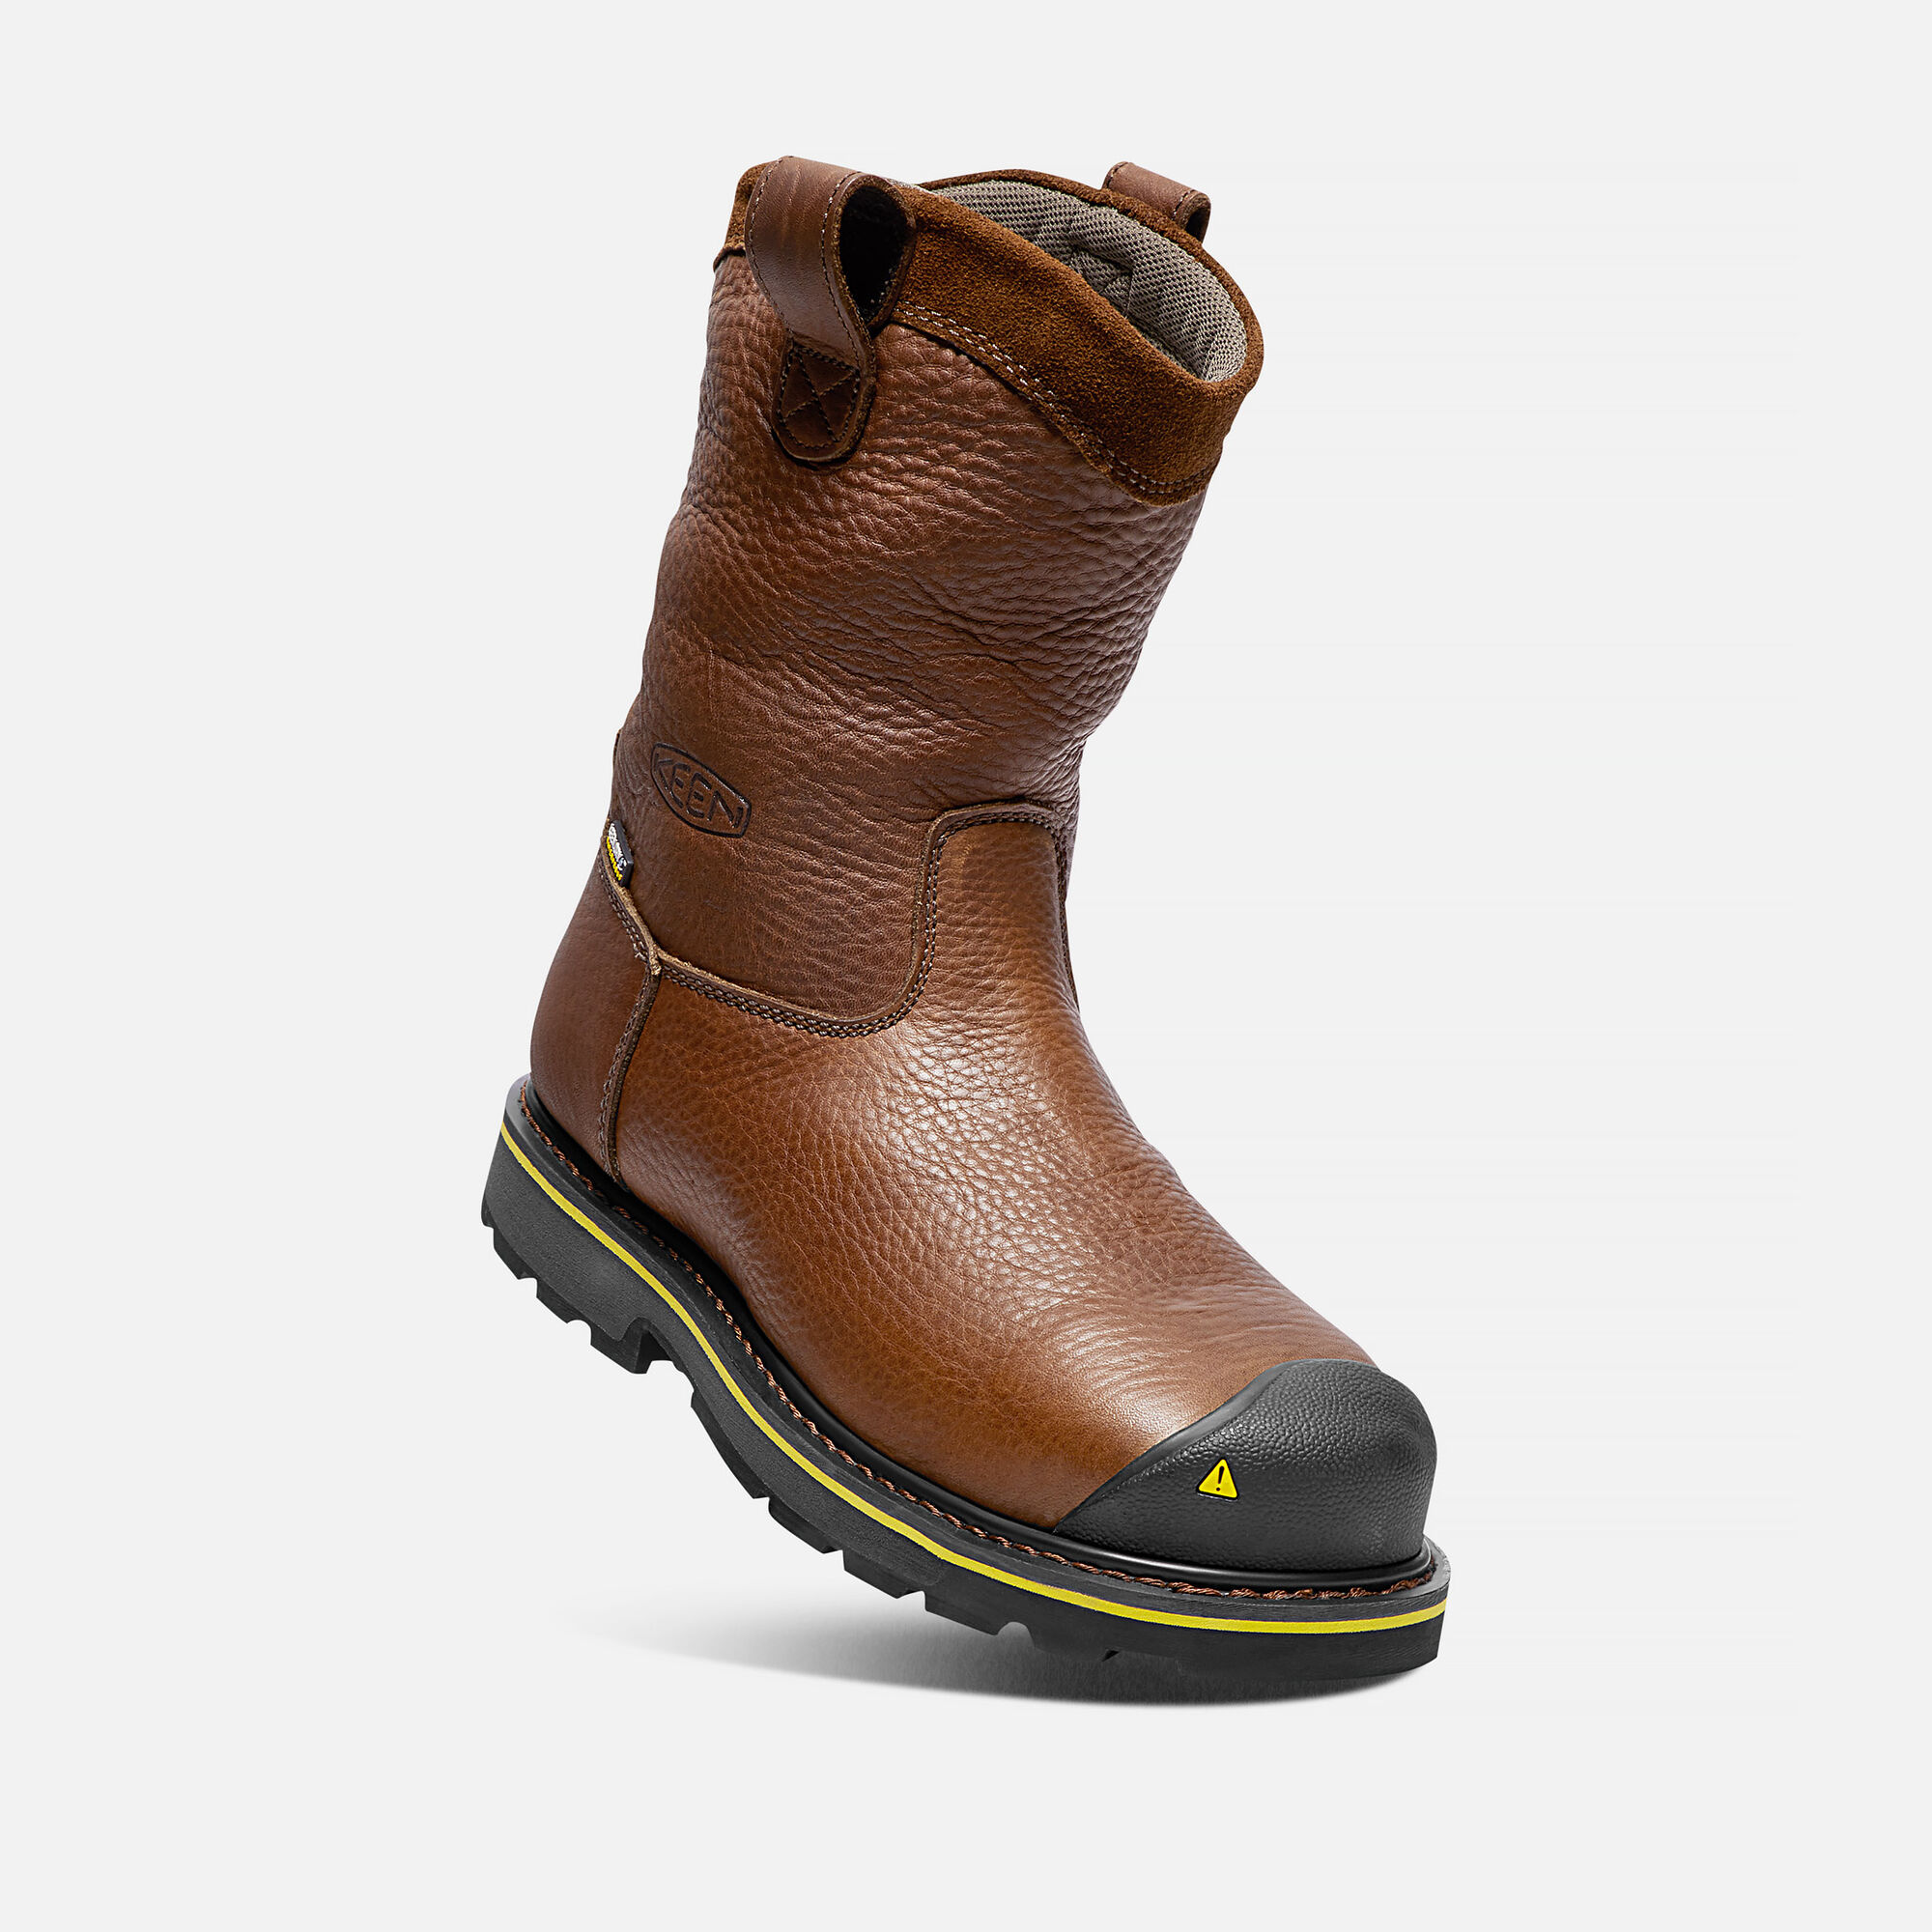 Mens Dallas Wellington Work Boots Steel Toe Farm Ranch D Island Shoes Slip On Driving Comfort Leather Black In Dark Brown Small View